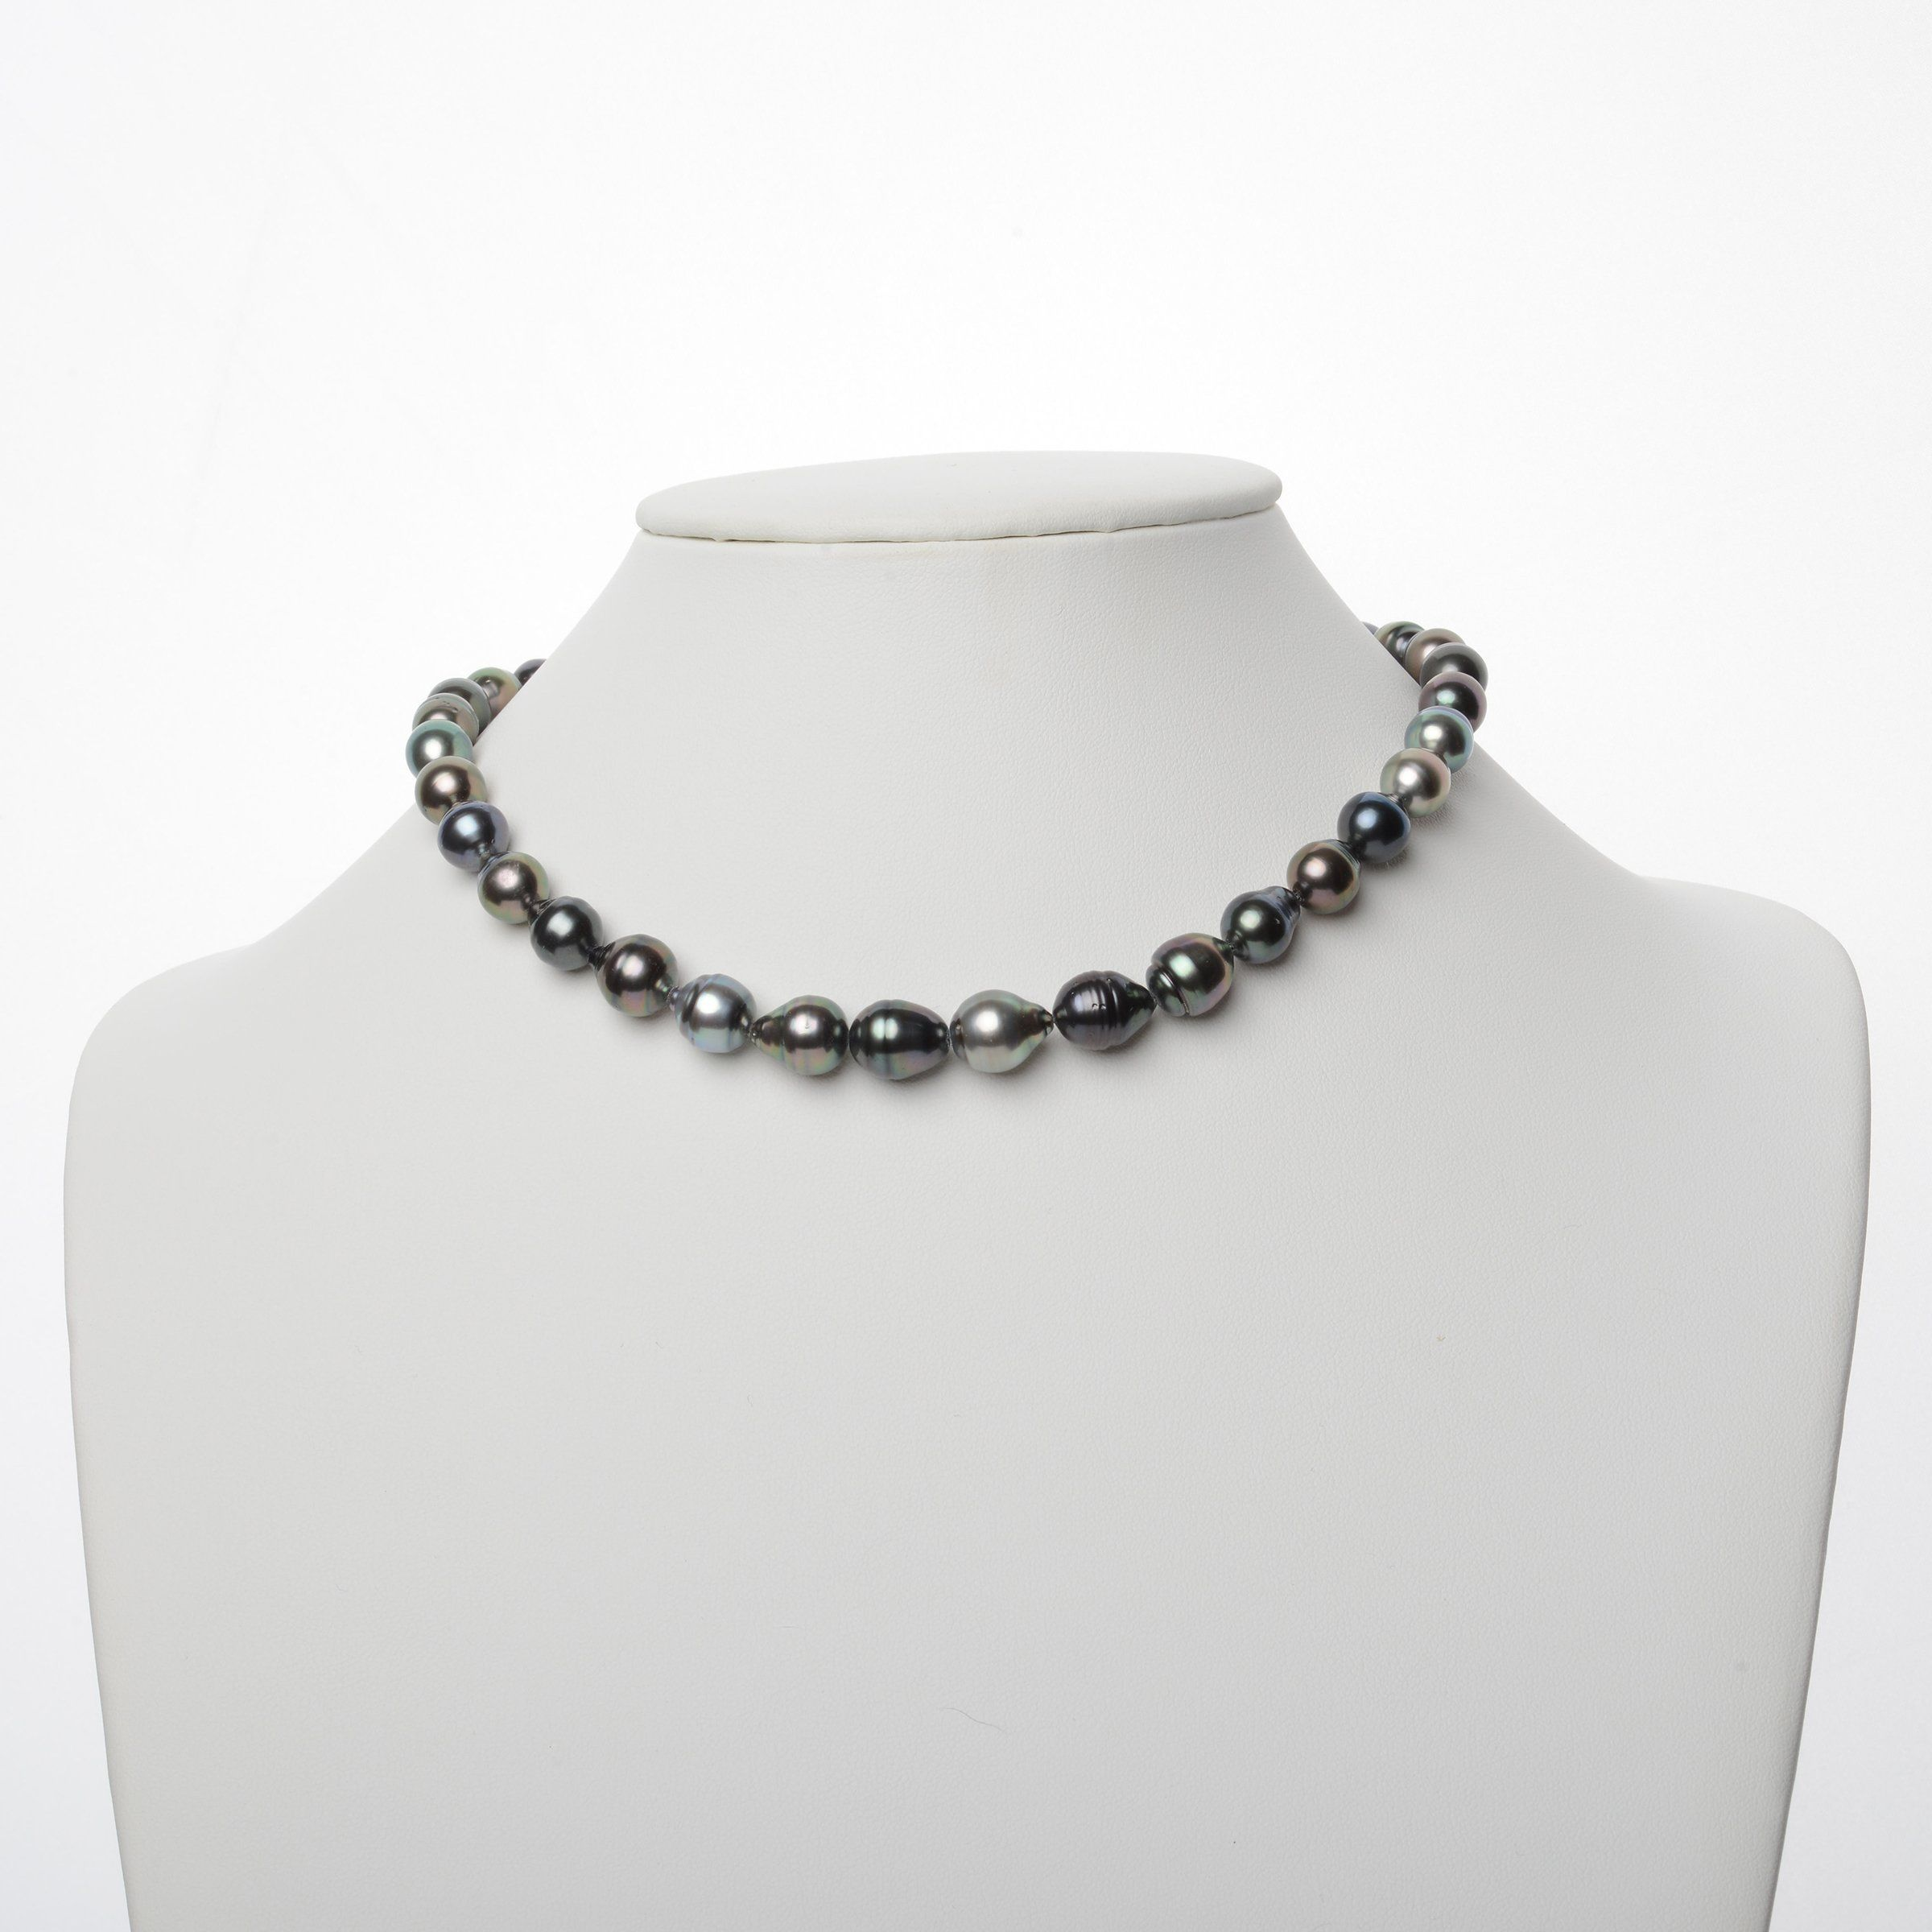 8.7-10.9 mm AA+/AAA Tahitian Baroque Pearl Necklace